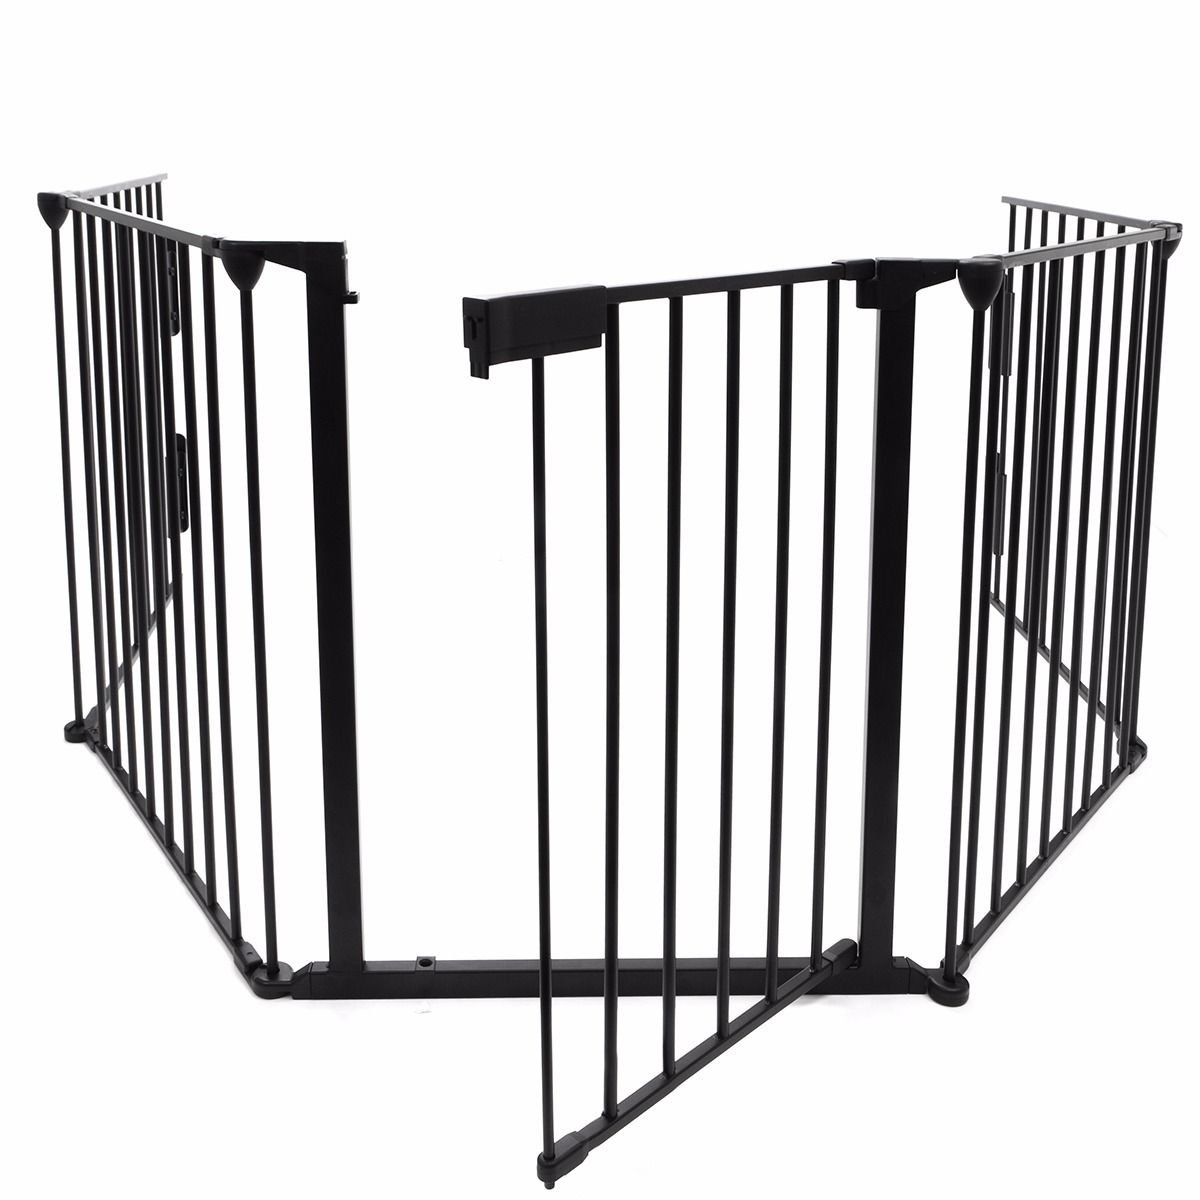 come on style shop Fireplace fence with door and handle baby safety pet dog gate barrier enclose home size 25''x30''